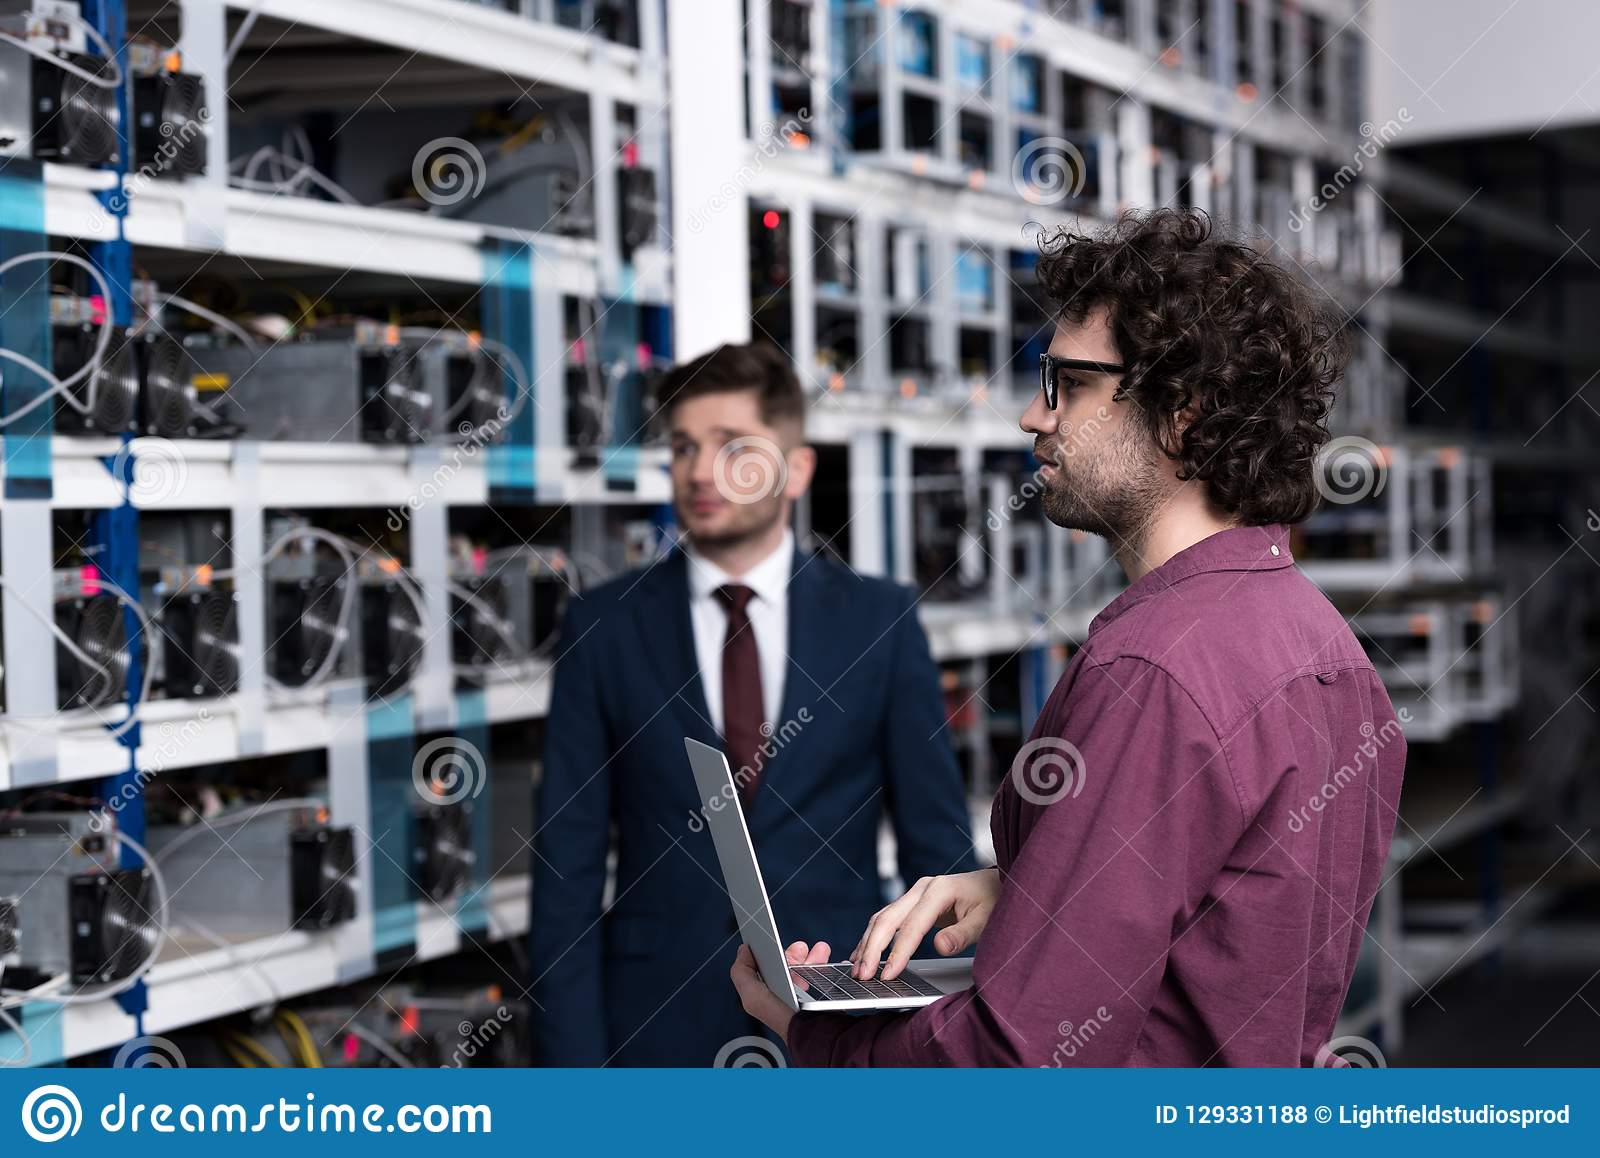 Successful businessman and computer engineer working together at bitcoin mining farm royalty free stock photos